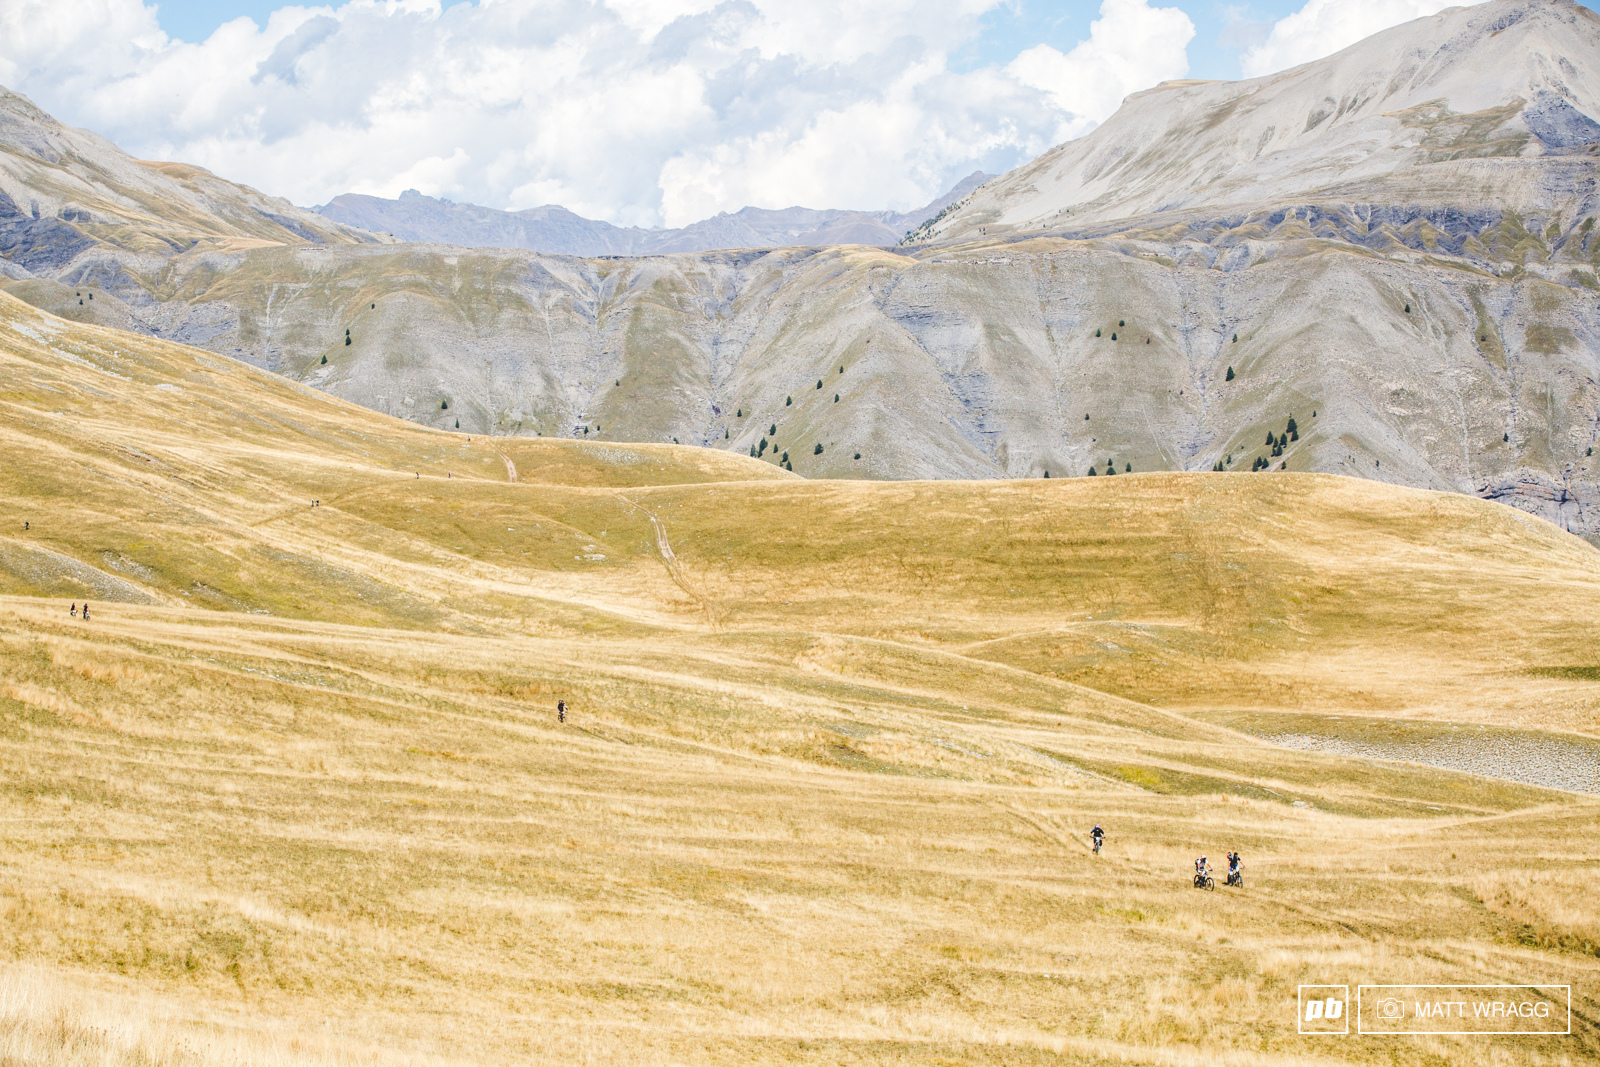 After the steep push there were a couple of kms across these jaw-dropping high alpine meadows to the start.